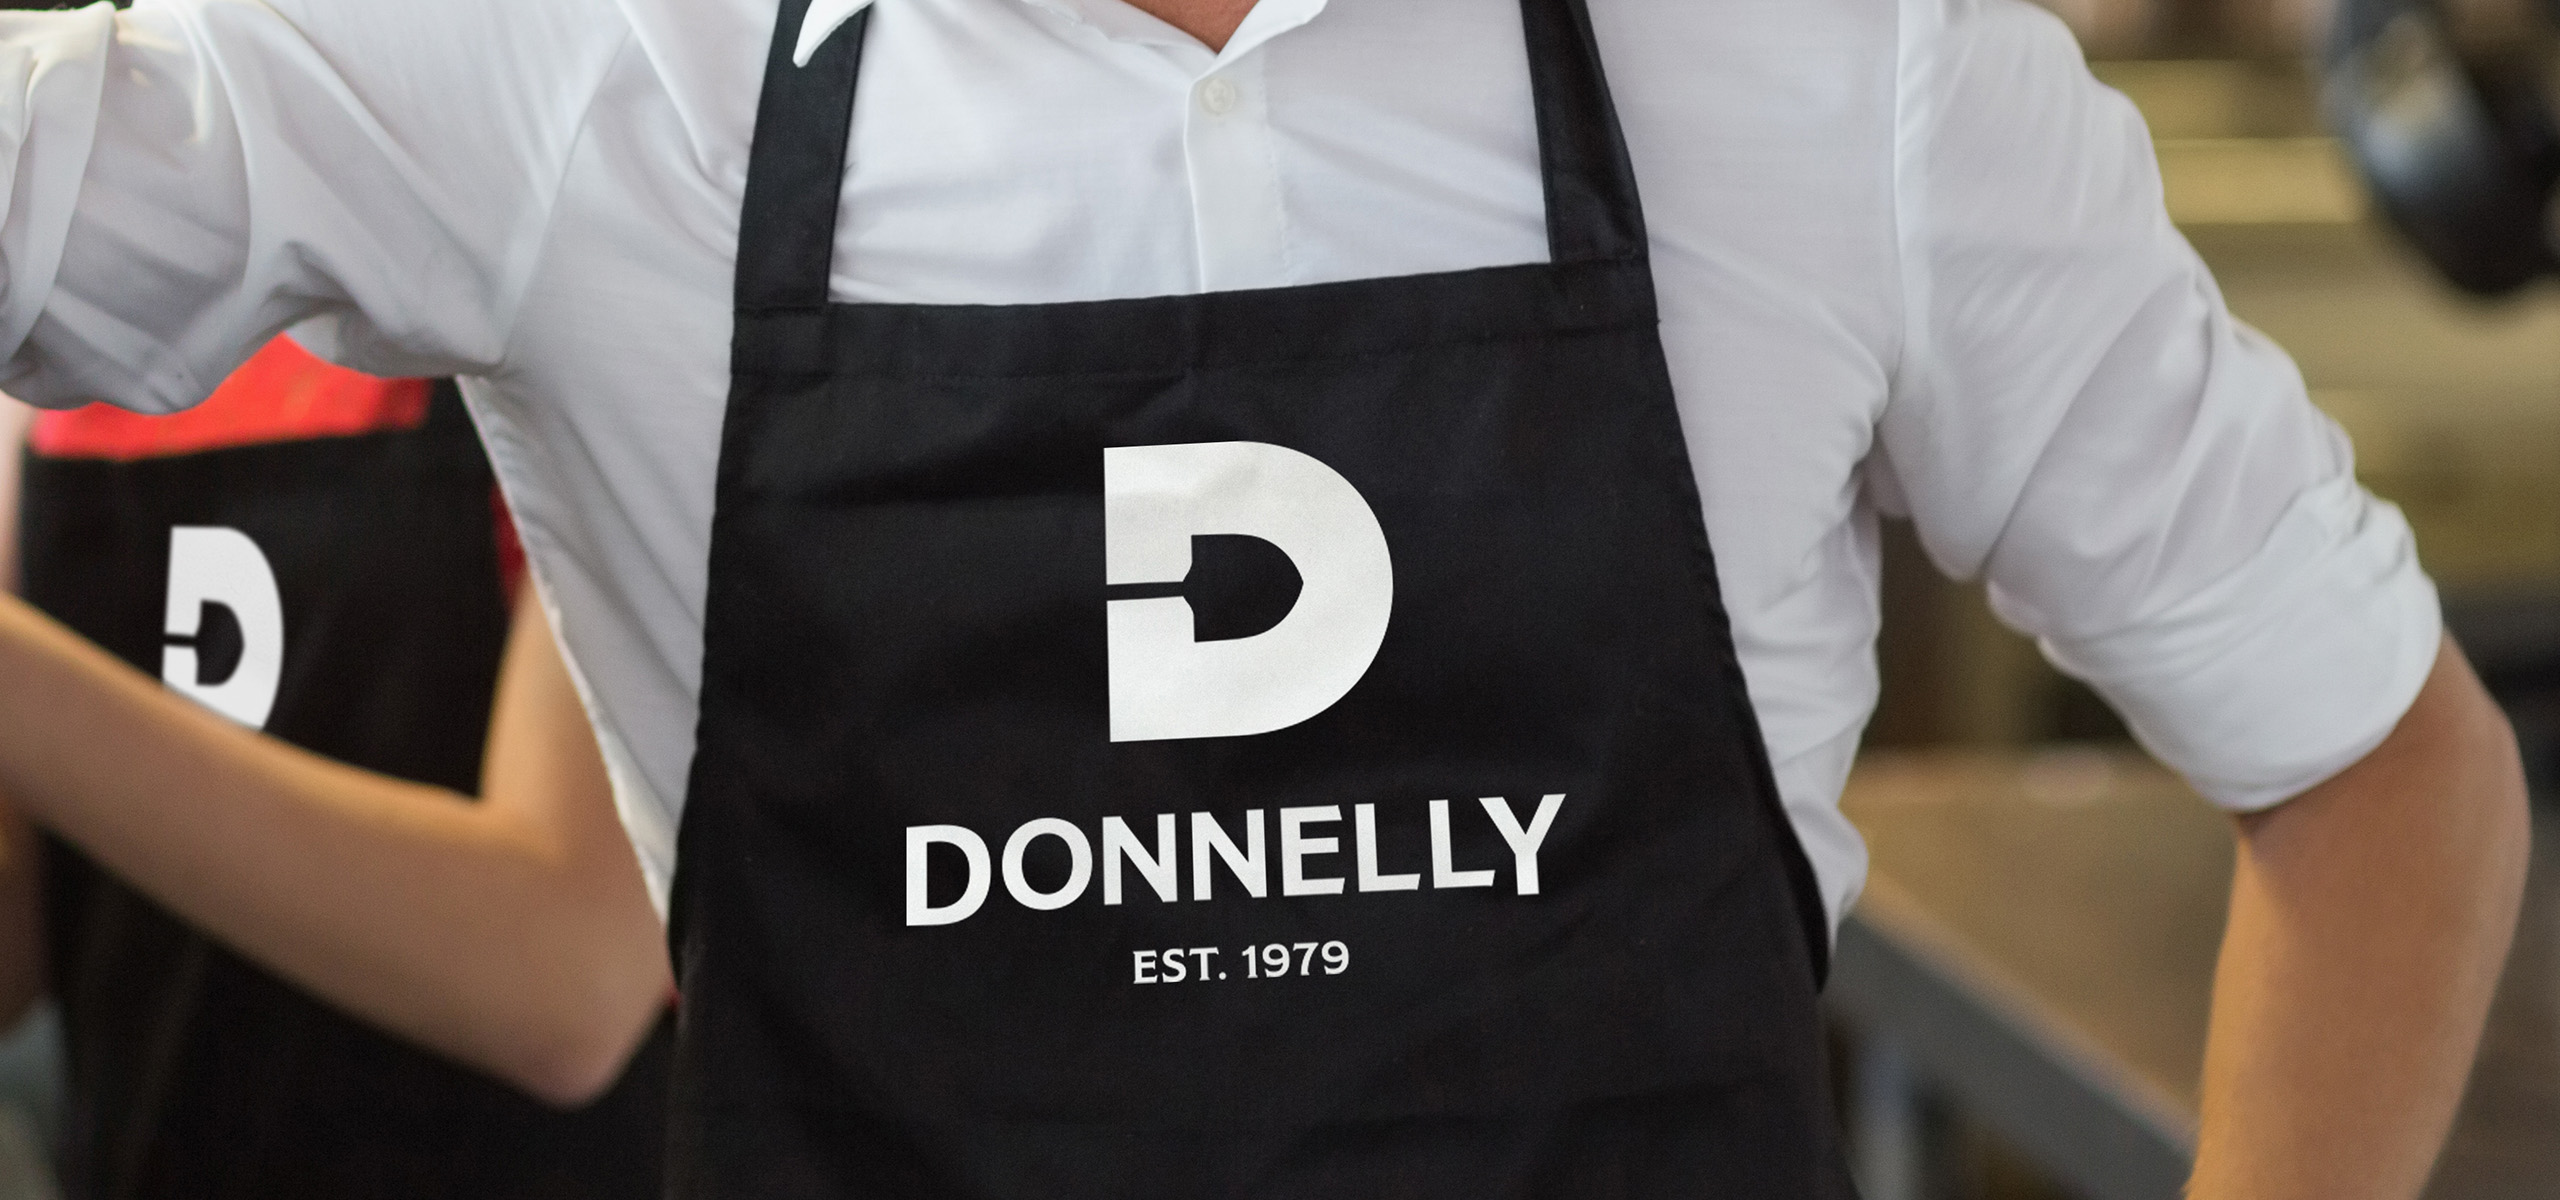 Apron mockup for food brand Donnelly, designed by White Bear Studio